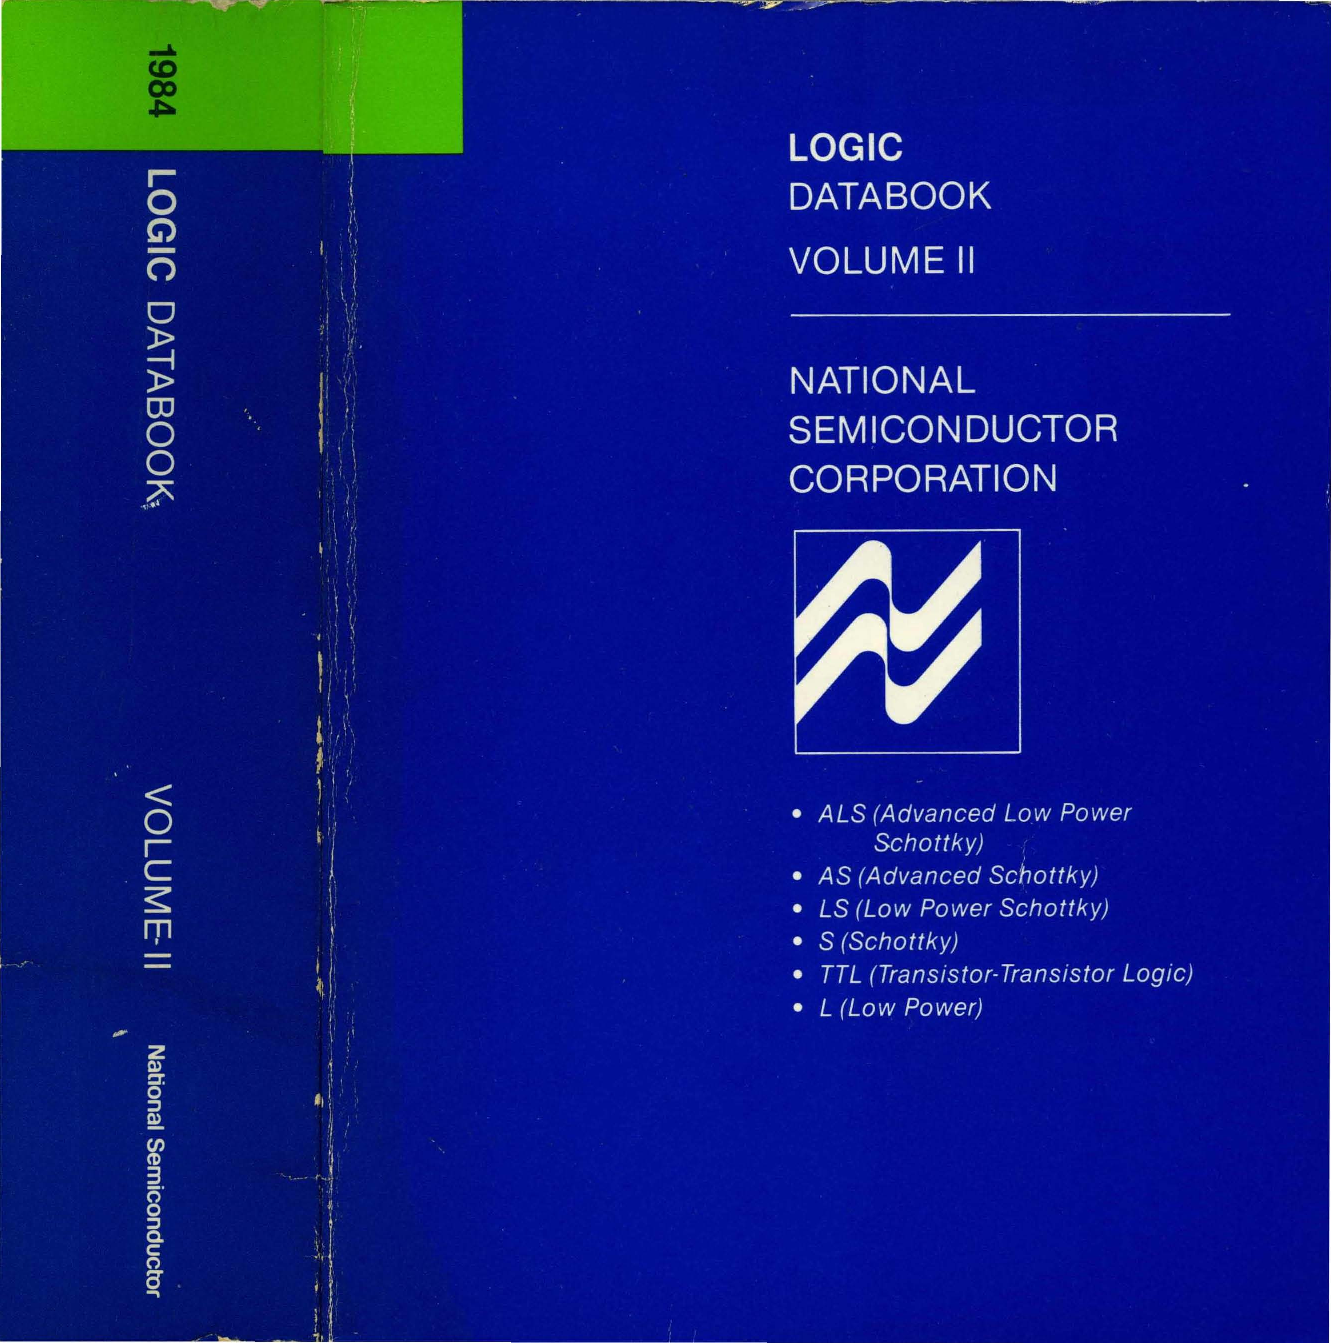 1984 National Logic Databook Volume 2 Digital Probe By Ic Ttl 7414